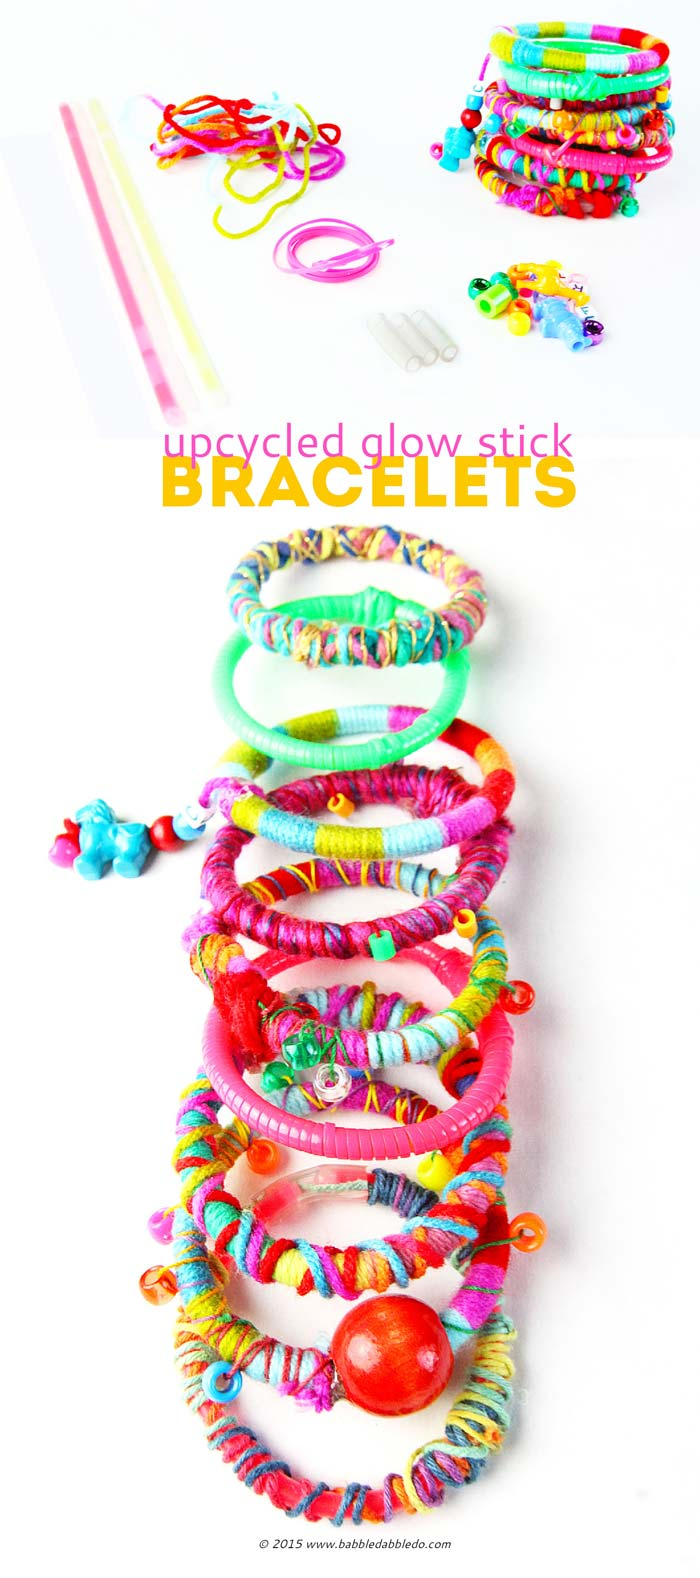 DIY-Bracelets-Upcycled-Glow-Sticks-BABBLE-DABBLE-DO--PIN2